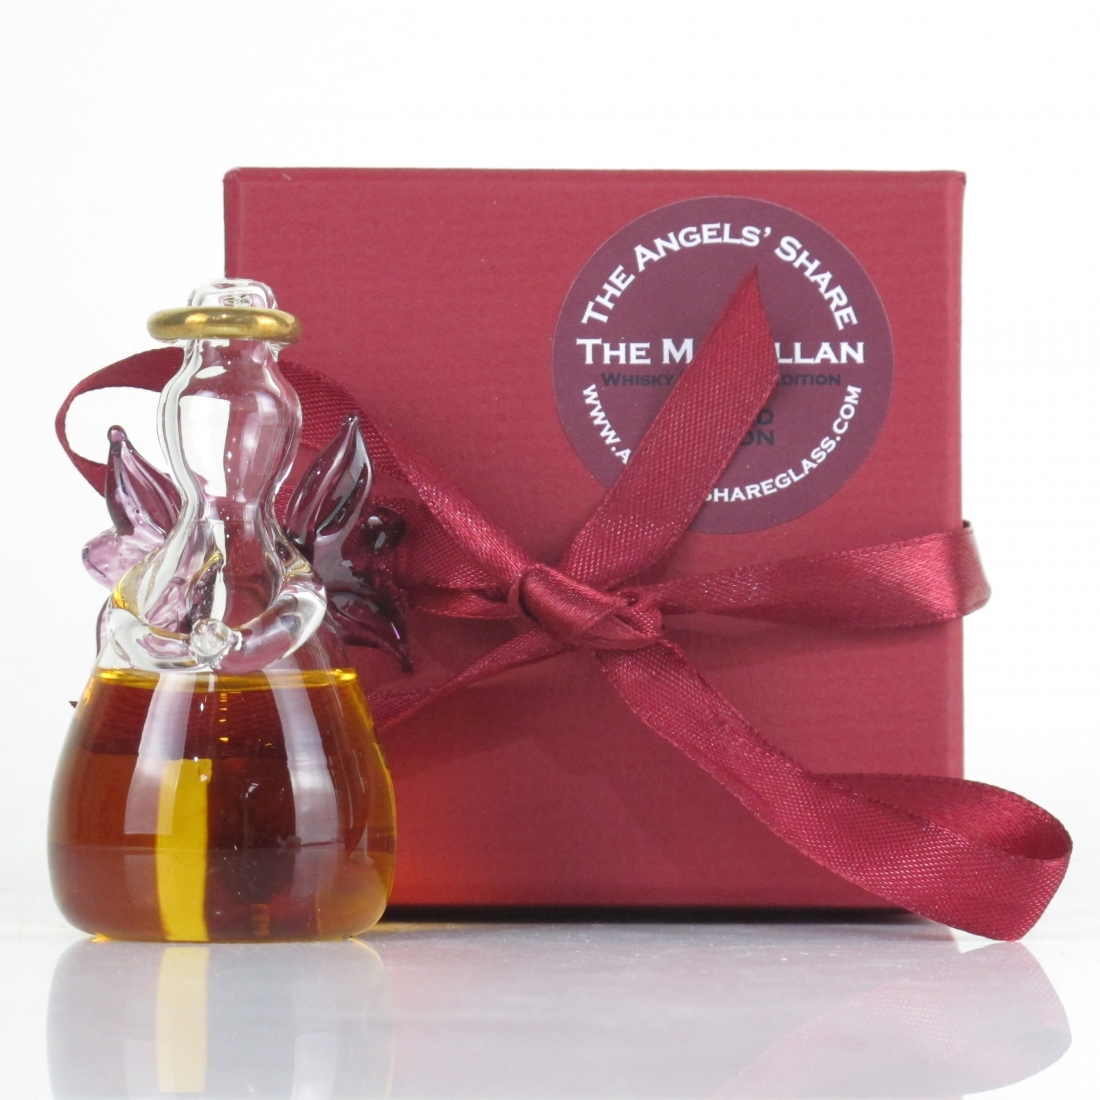 Macallan Angels' Share Limited Edition